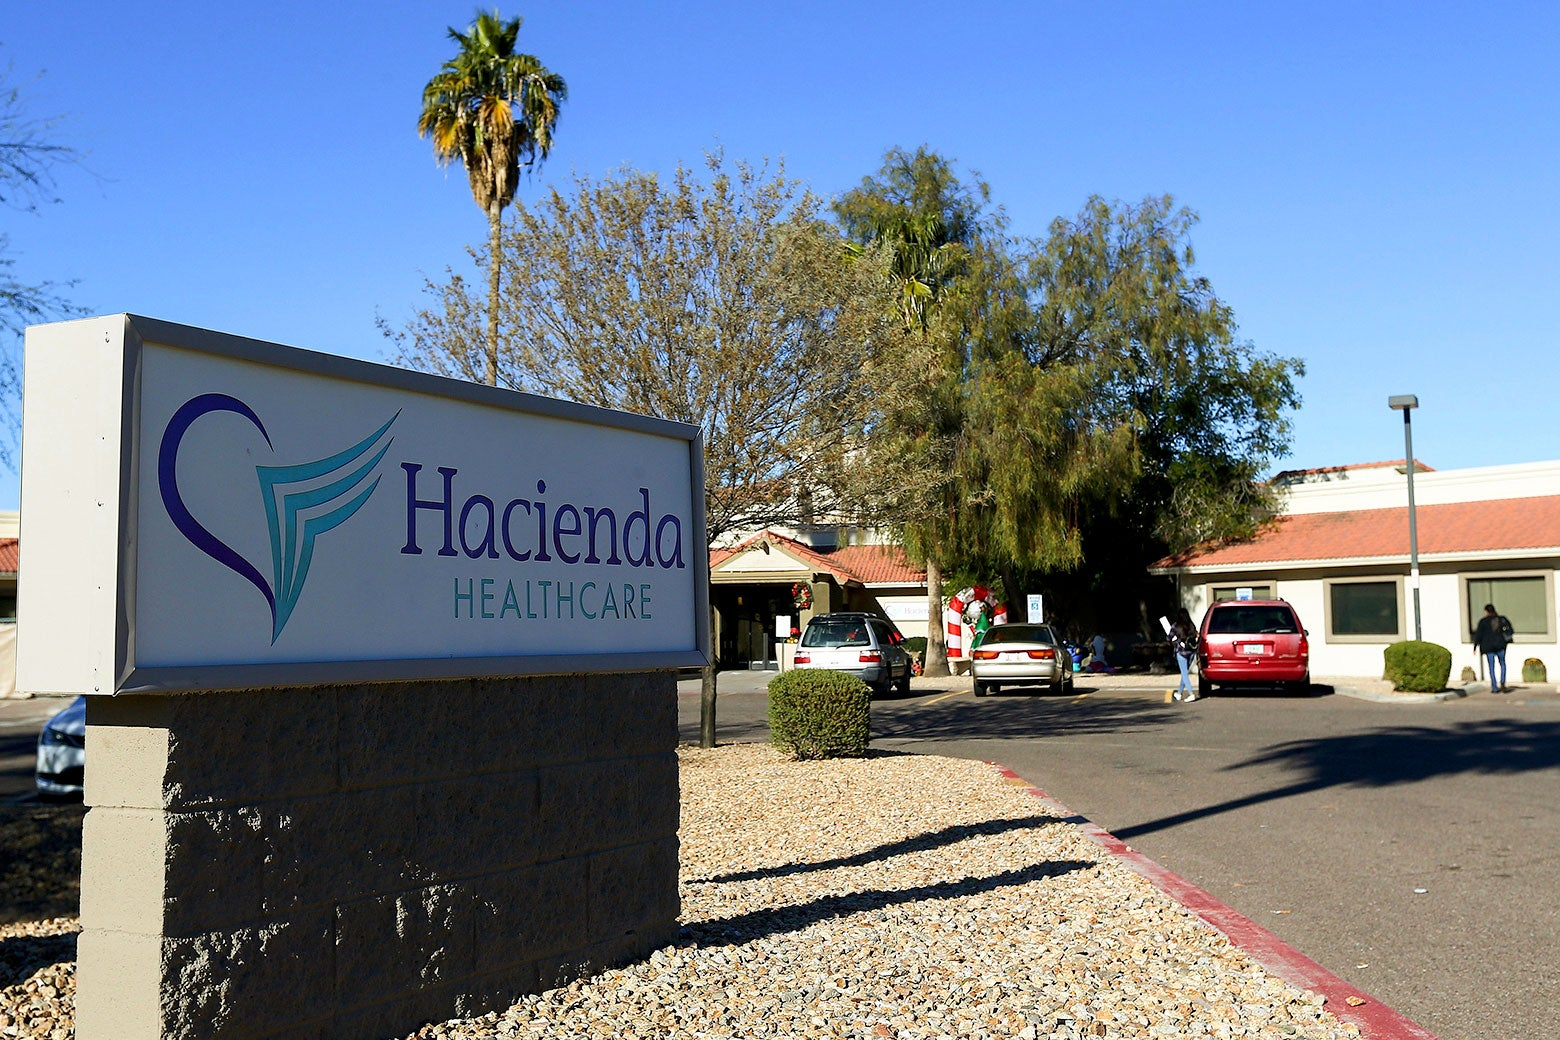 File photo of the Hacienda HealthCare sign and building in Phoenix.